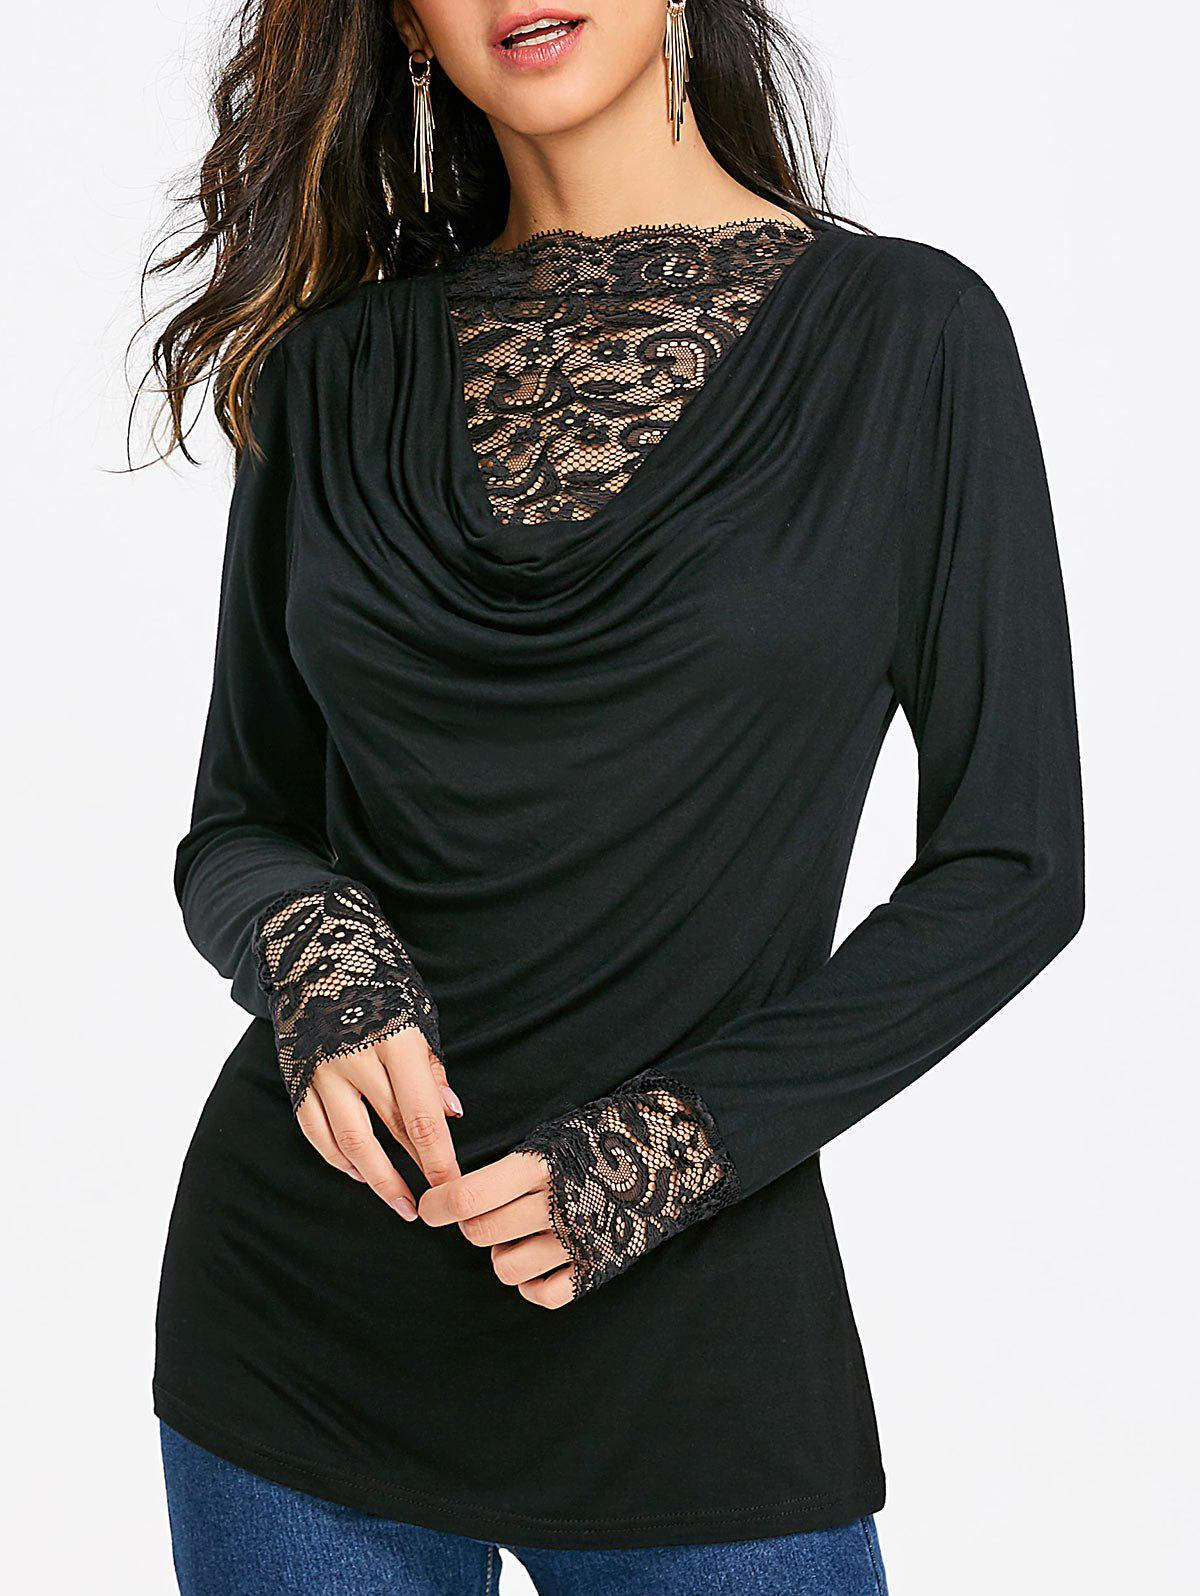 Lace Insert Heap Front Long Sleeve T-shirt - BLACK S